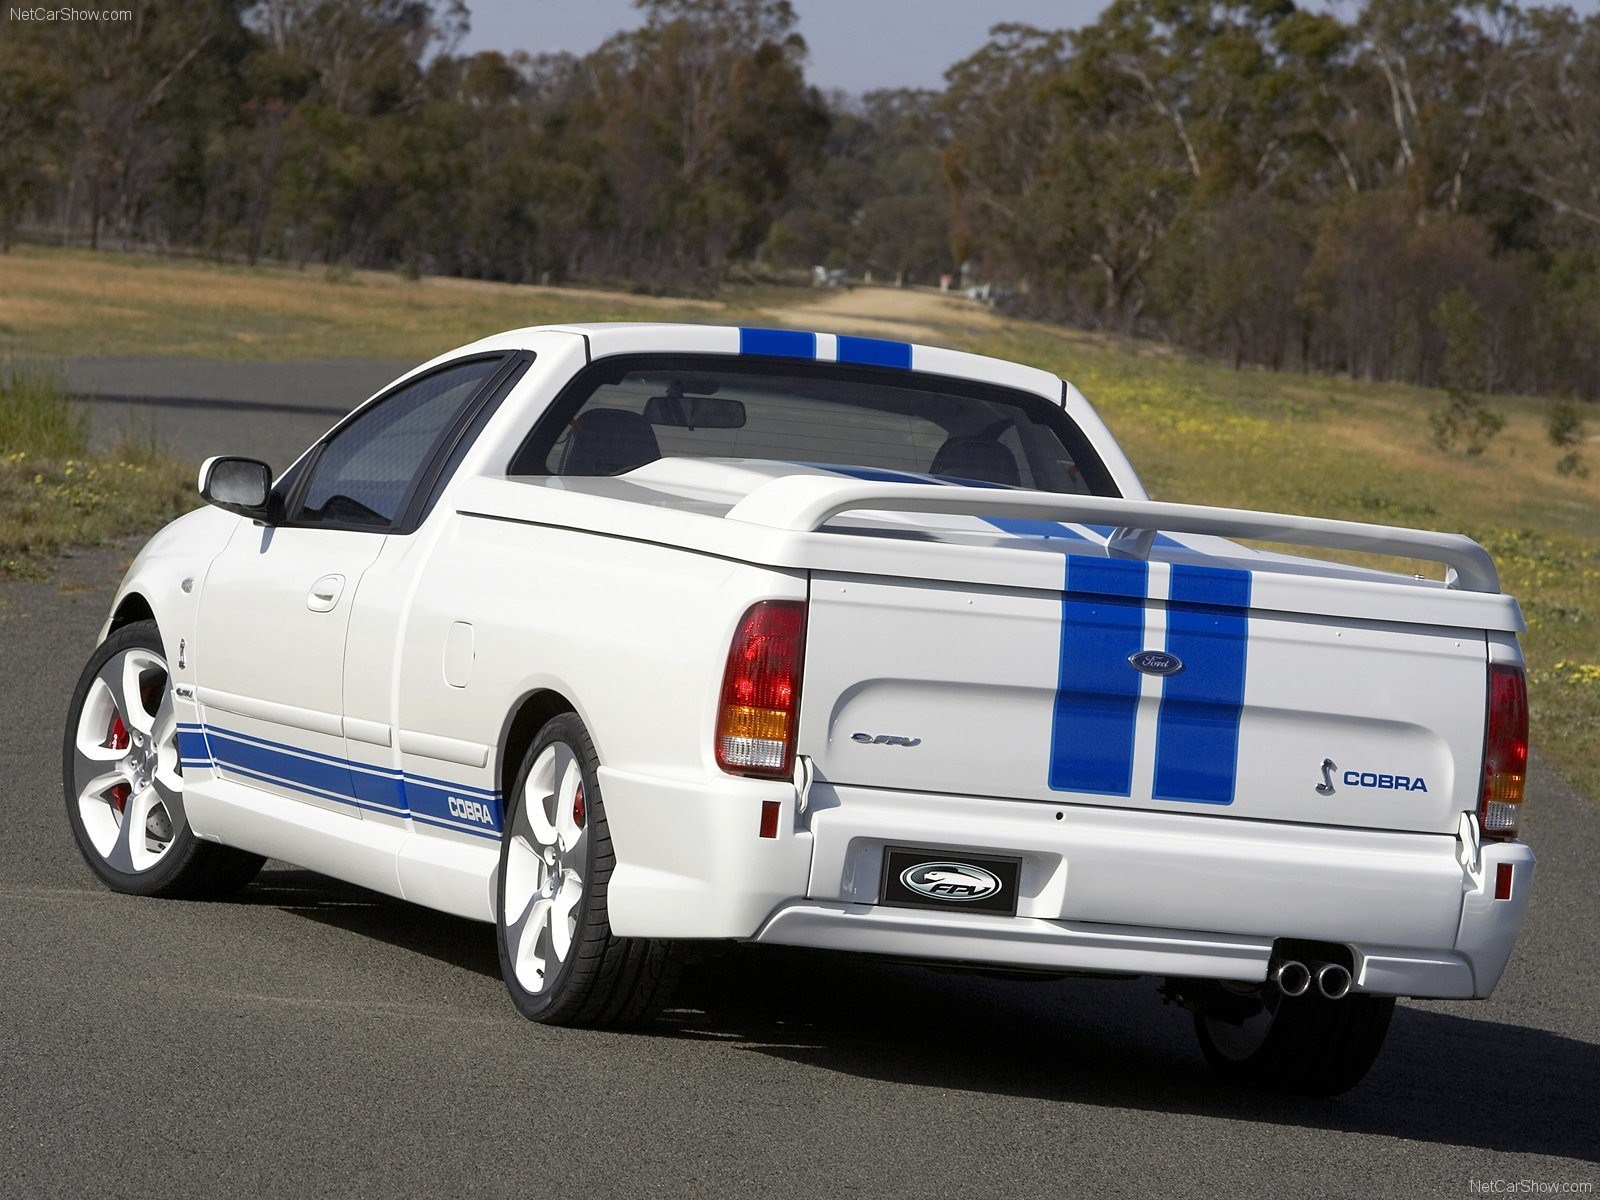 New Cars Cobra Vehicles Fpv Ford Falcon Ute Aussie Muscle Car On This Month